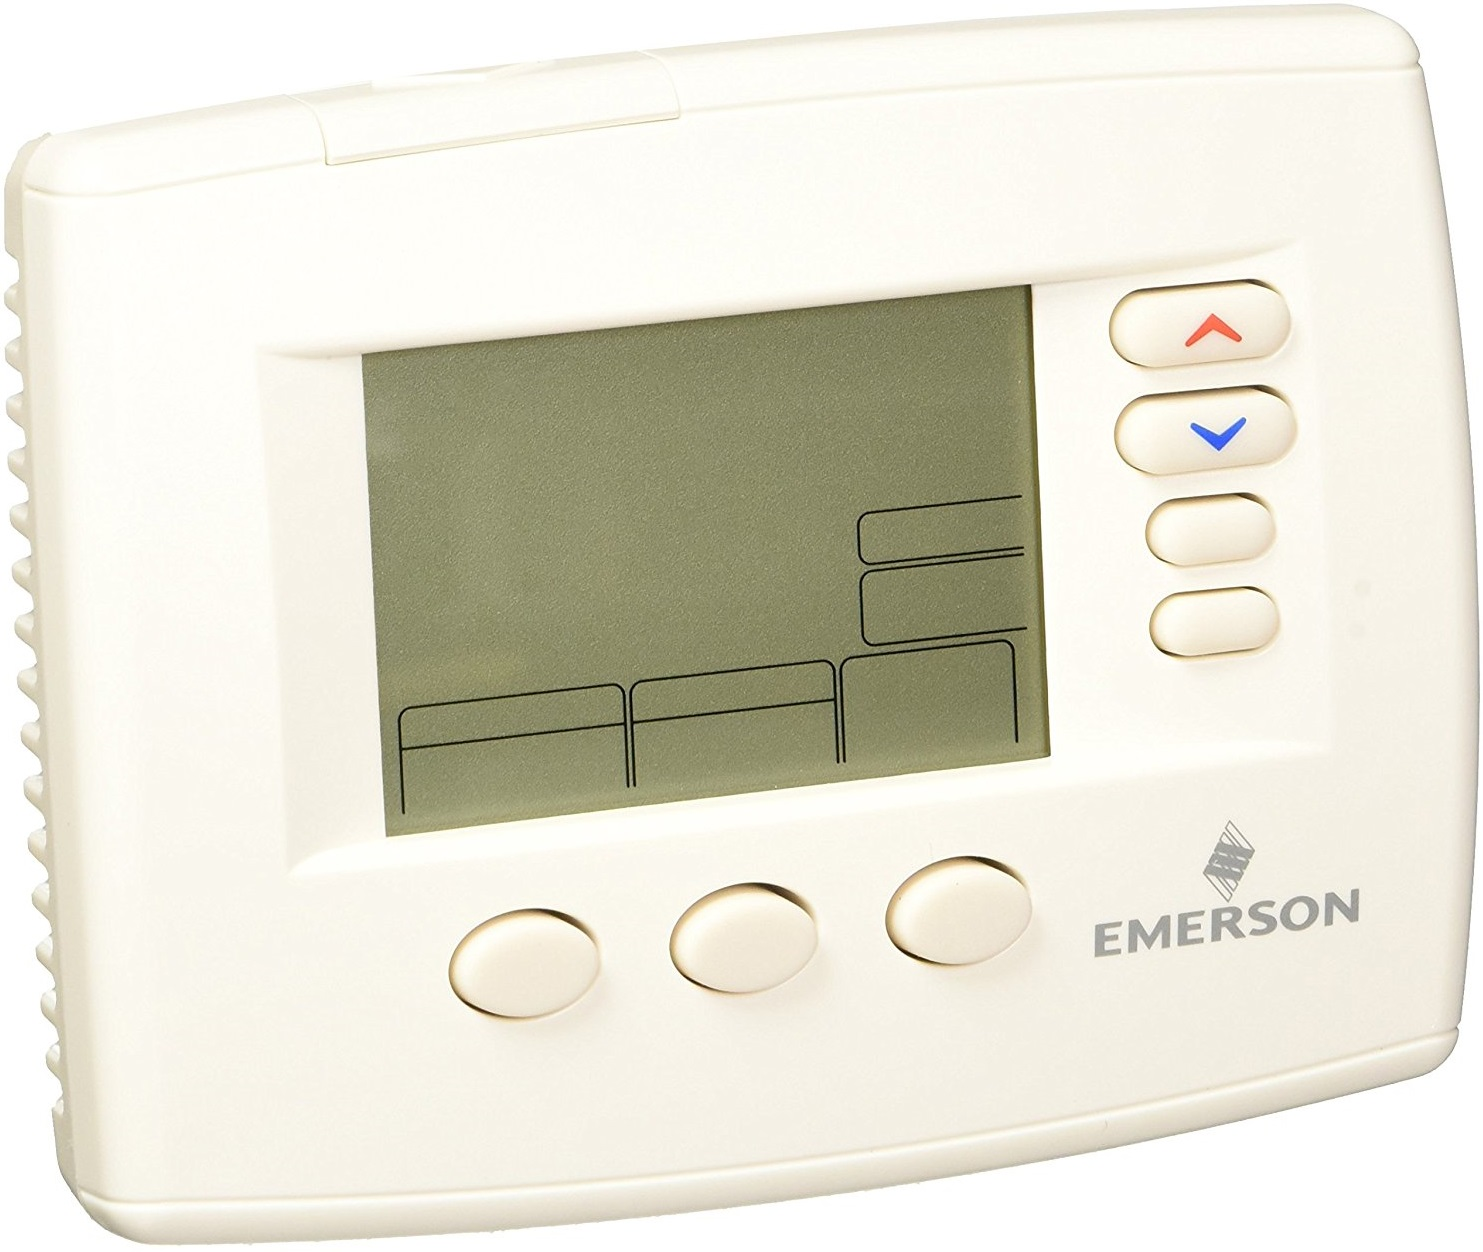 Emerson 1F85-0422 2 Heat and Cool